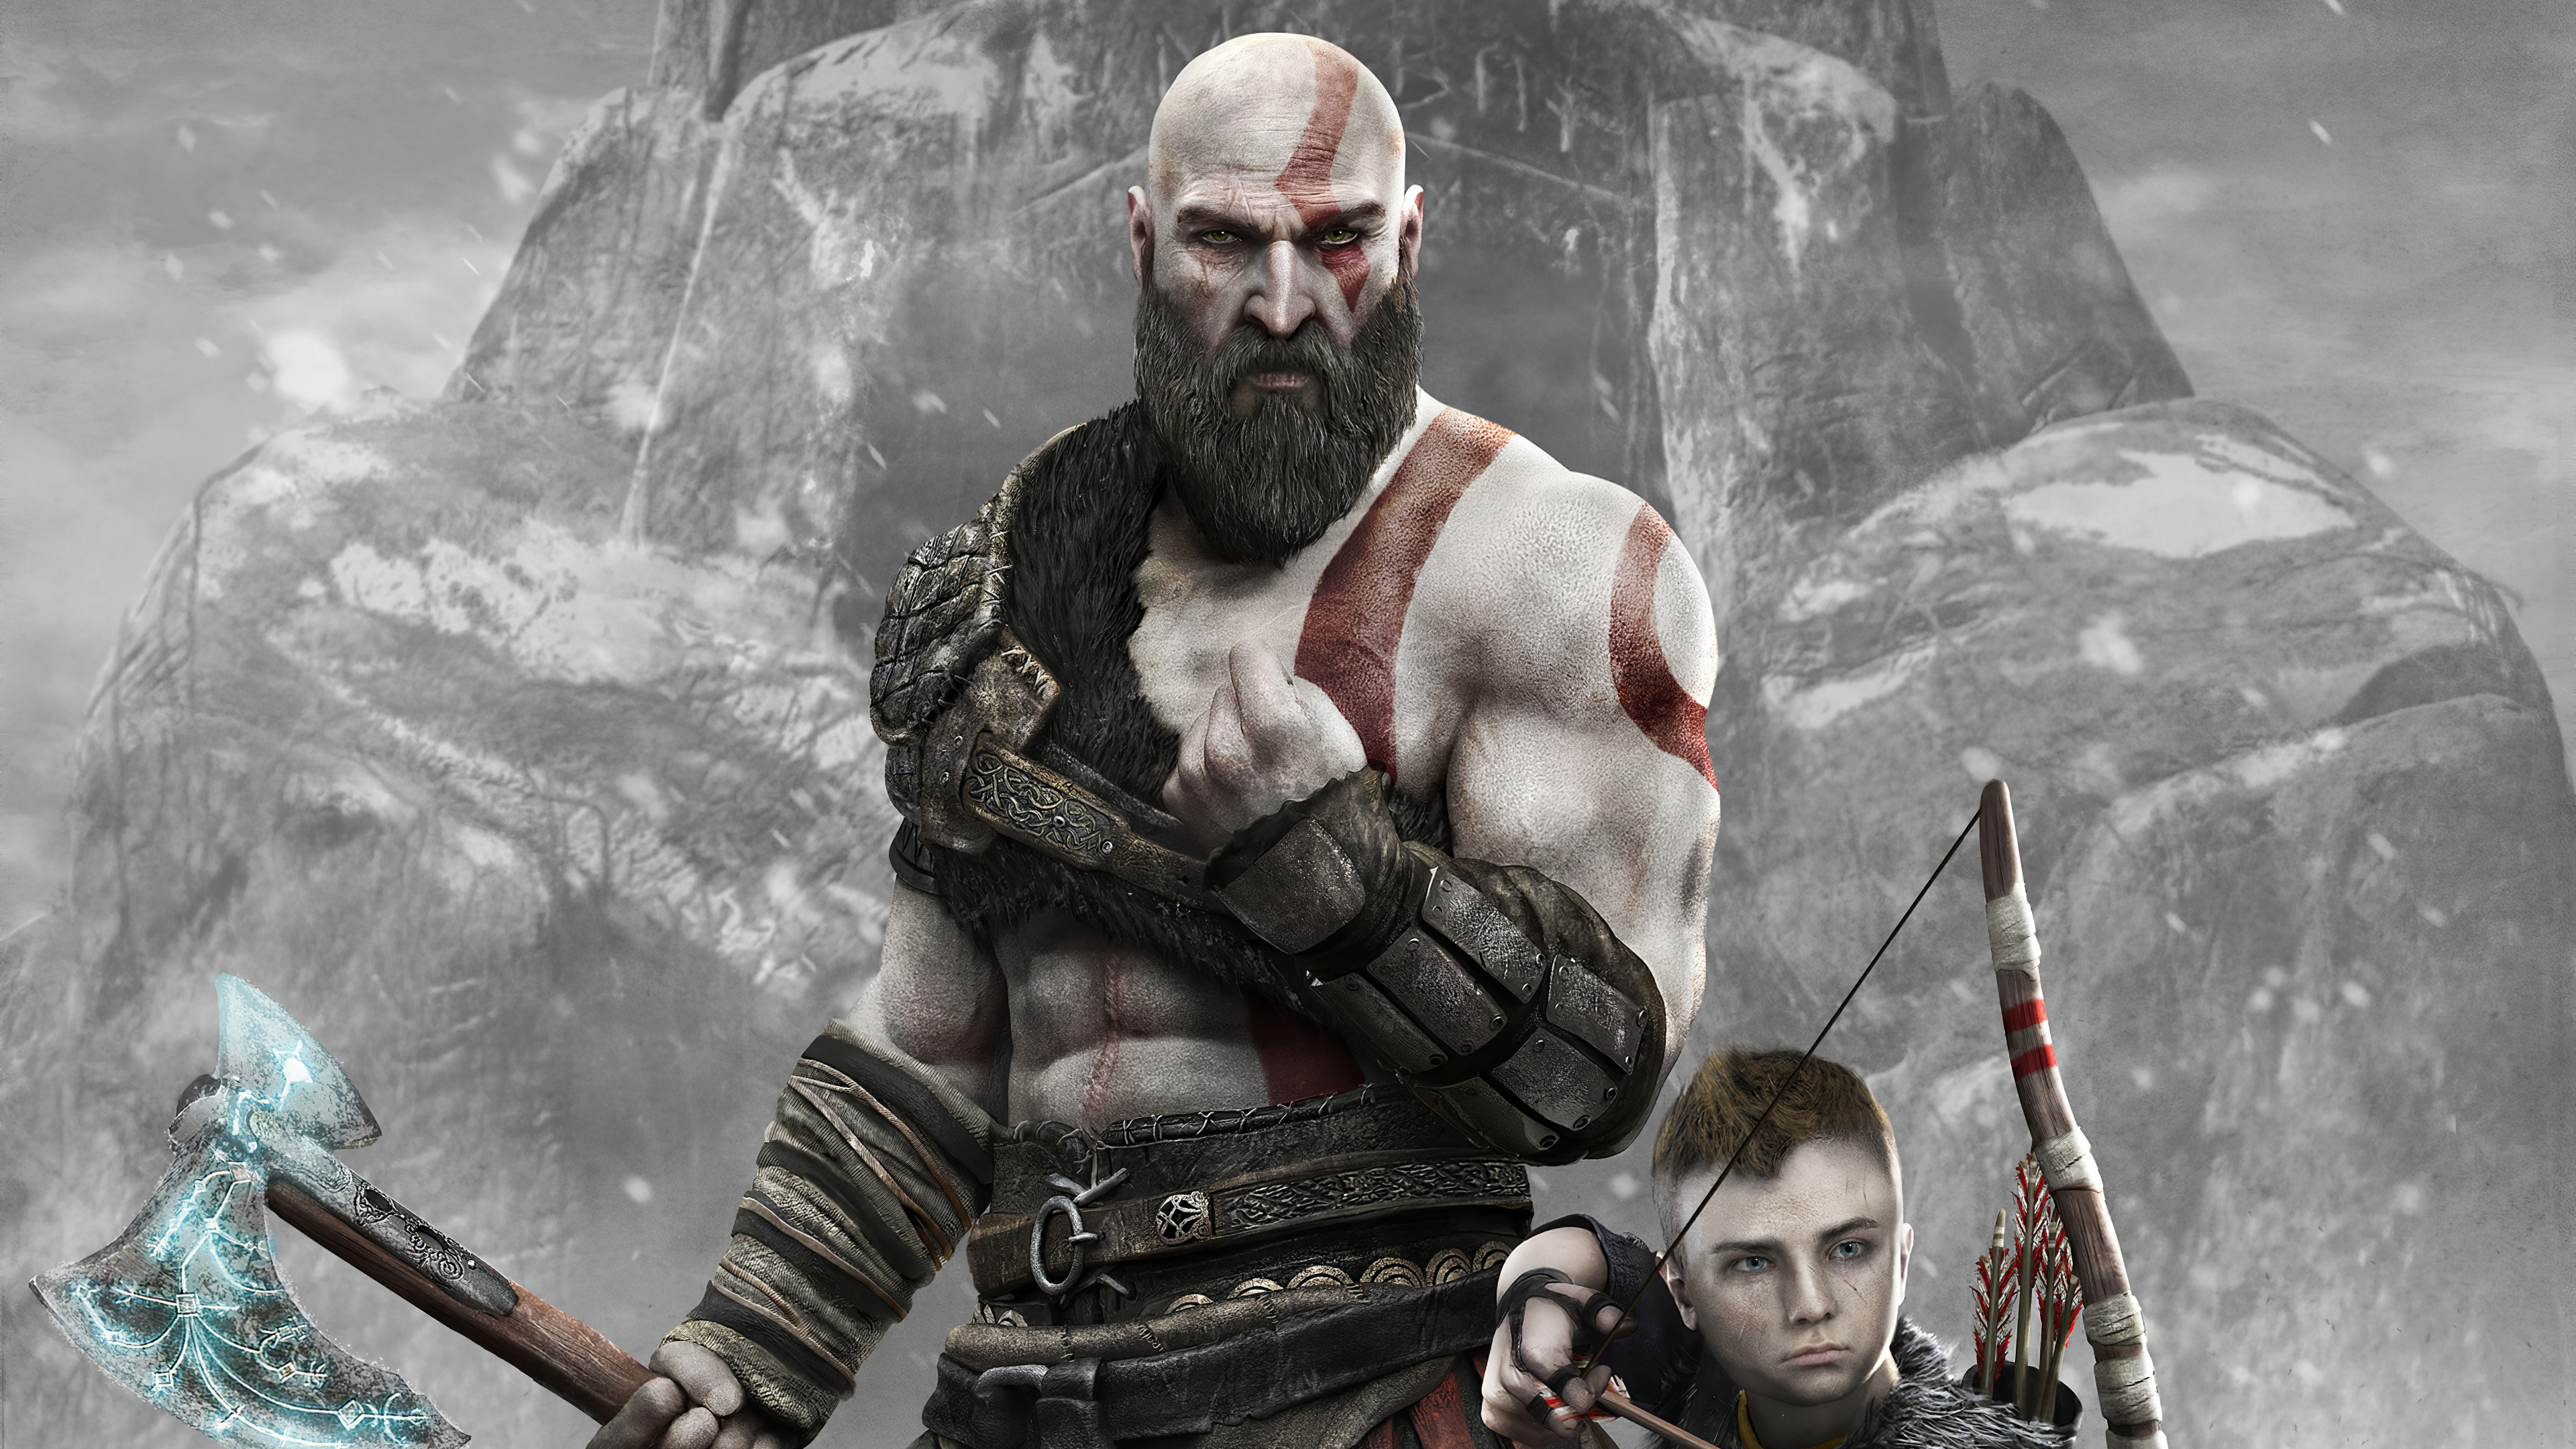 2 God of war HD Wallpapers & Backgrounds